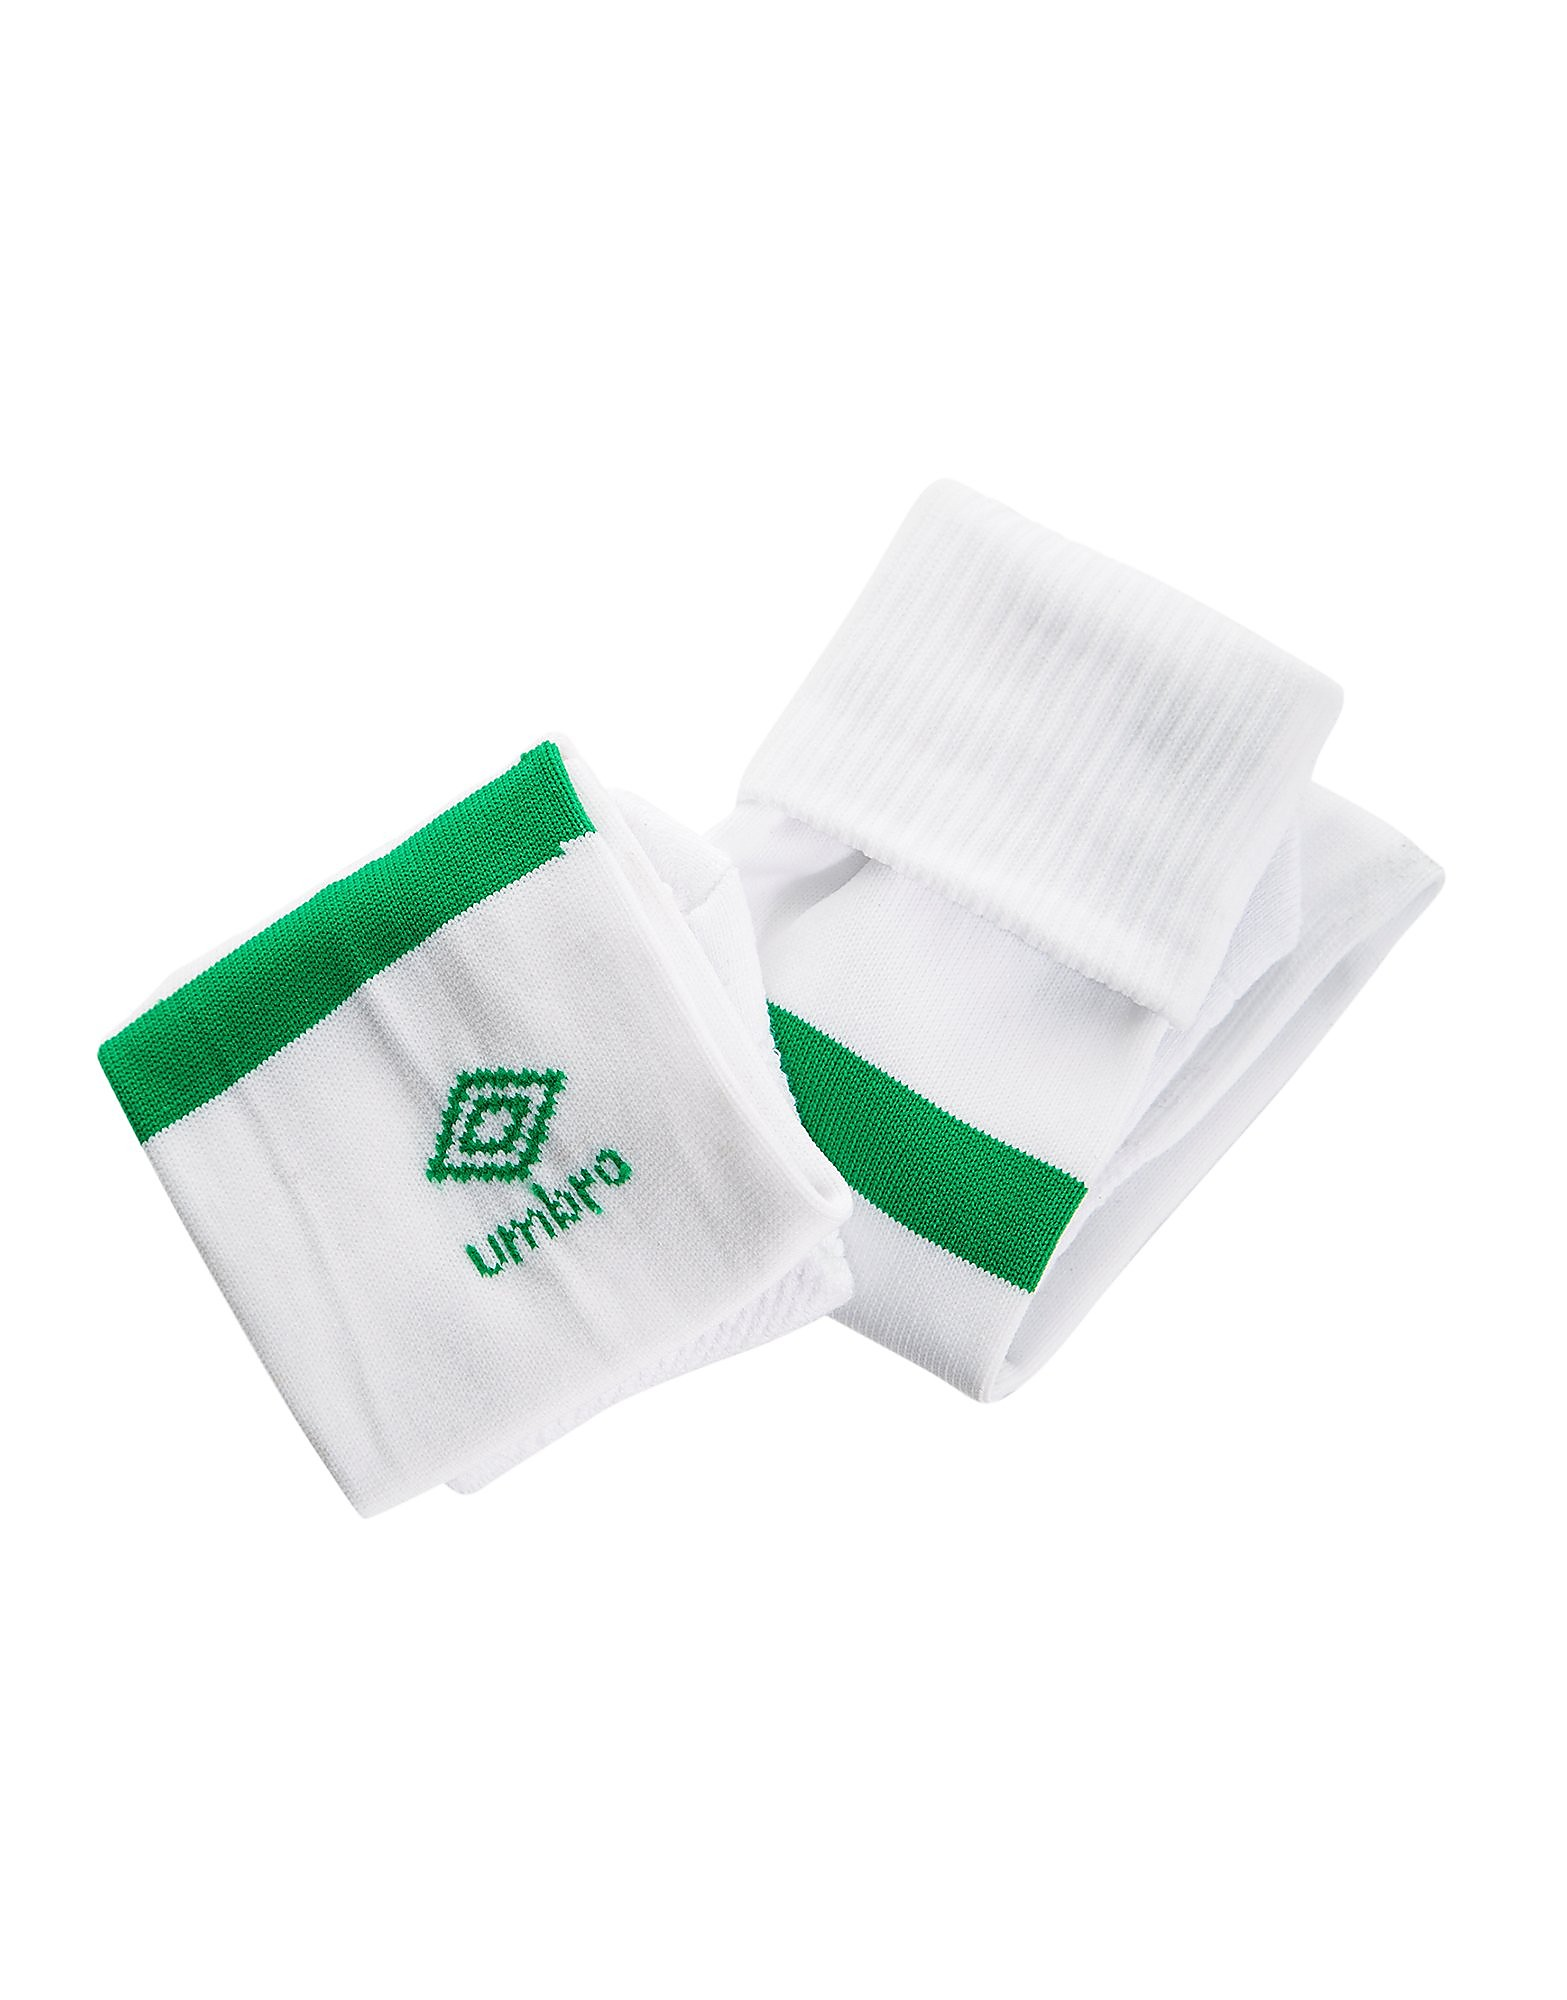 Umbro Republic of Ireland 2016 Jnr Away Socks